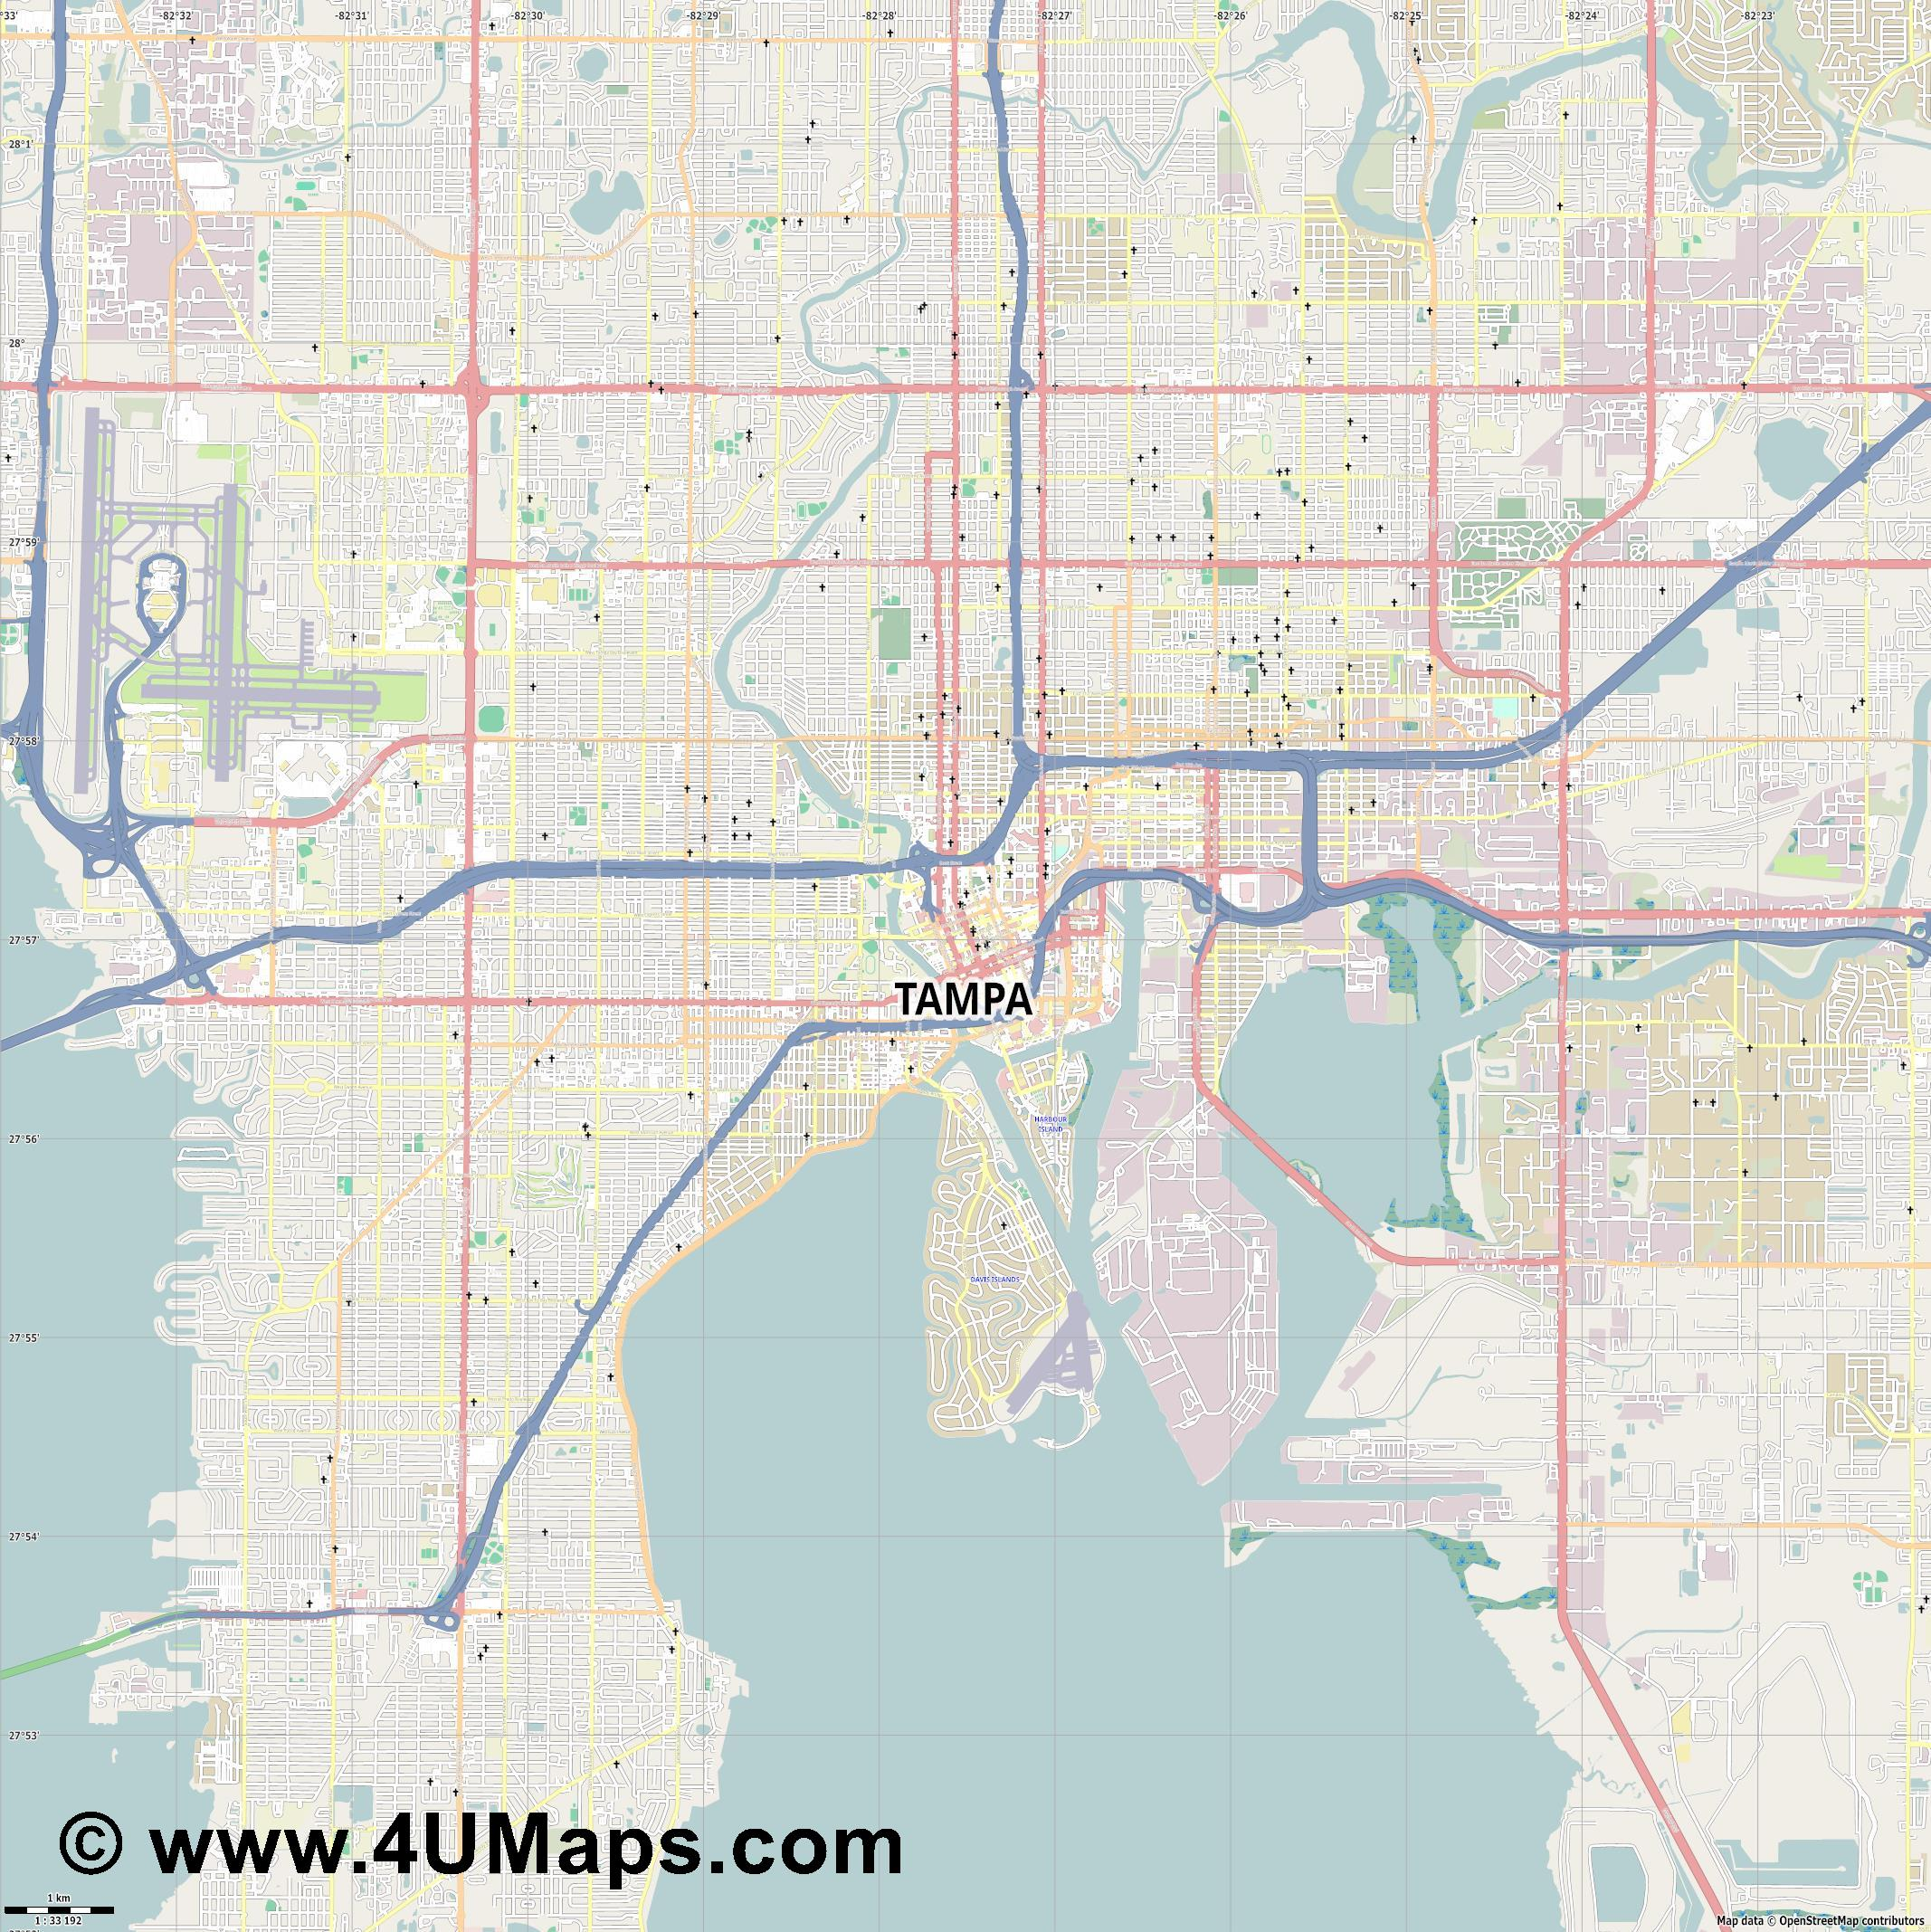 Tampa  jpg high detail, large area preview vector city map